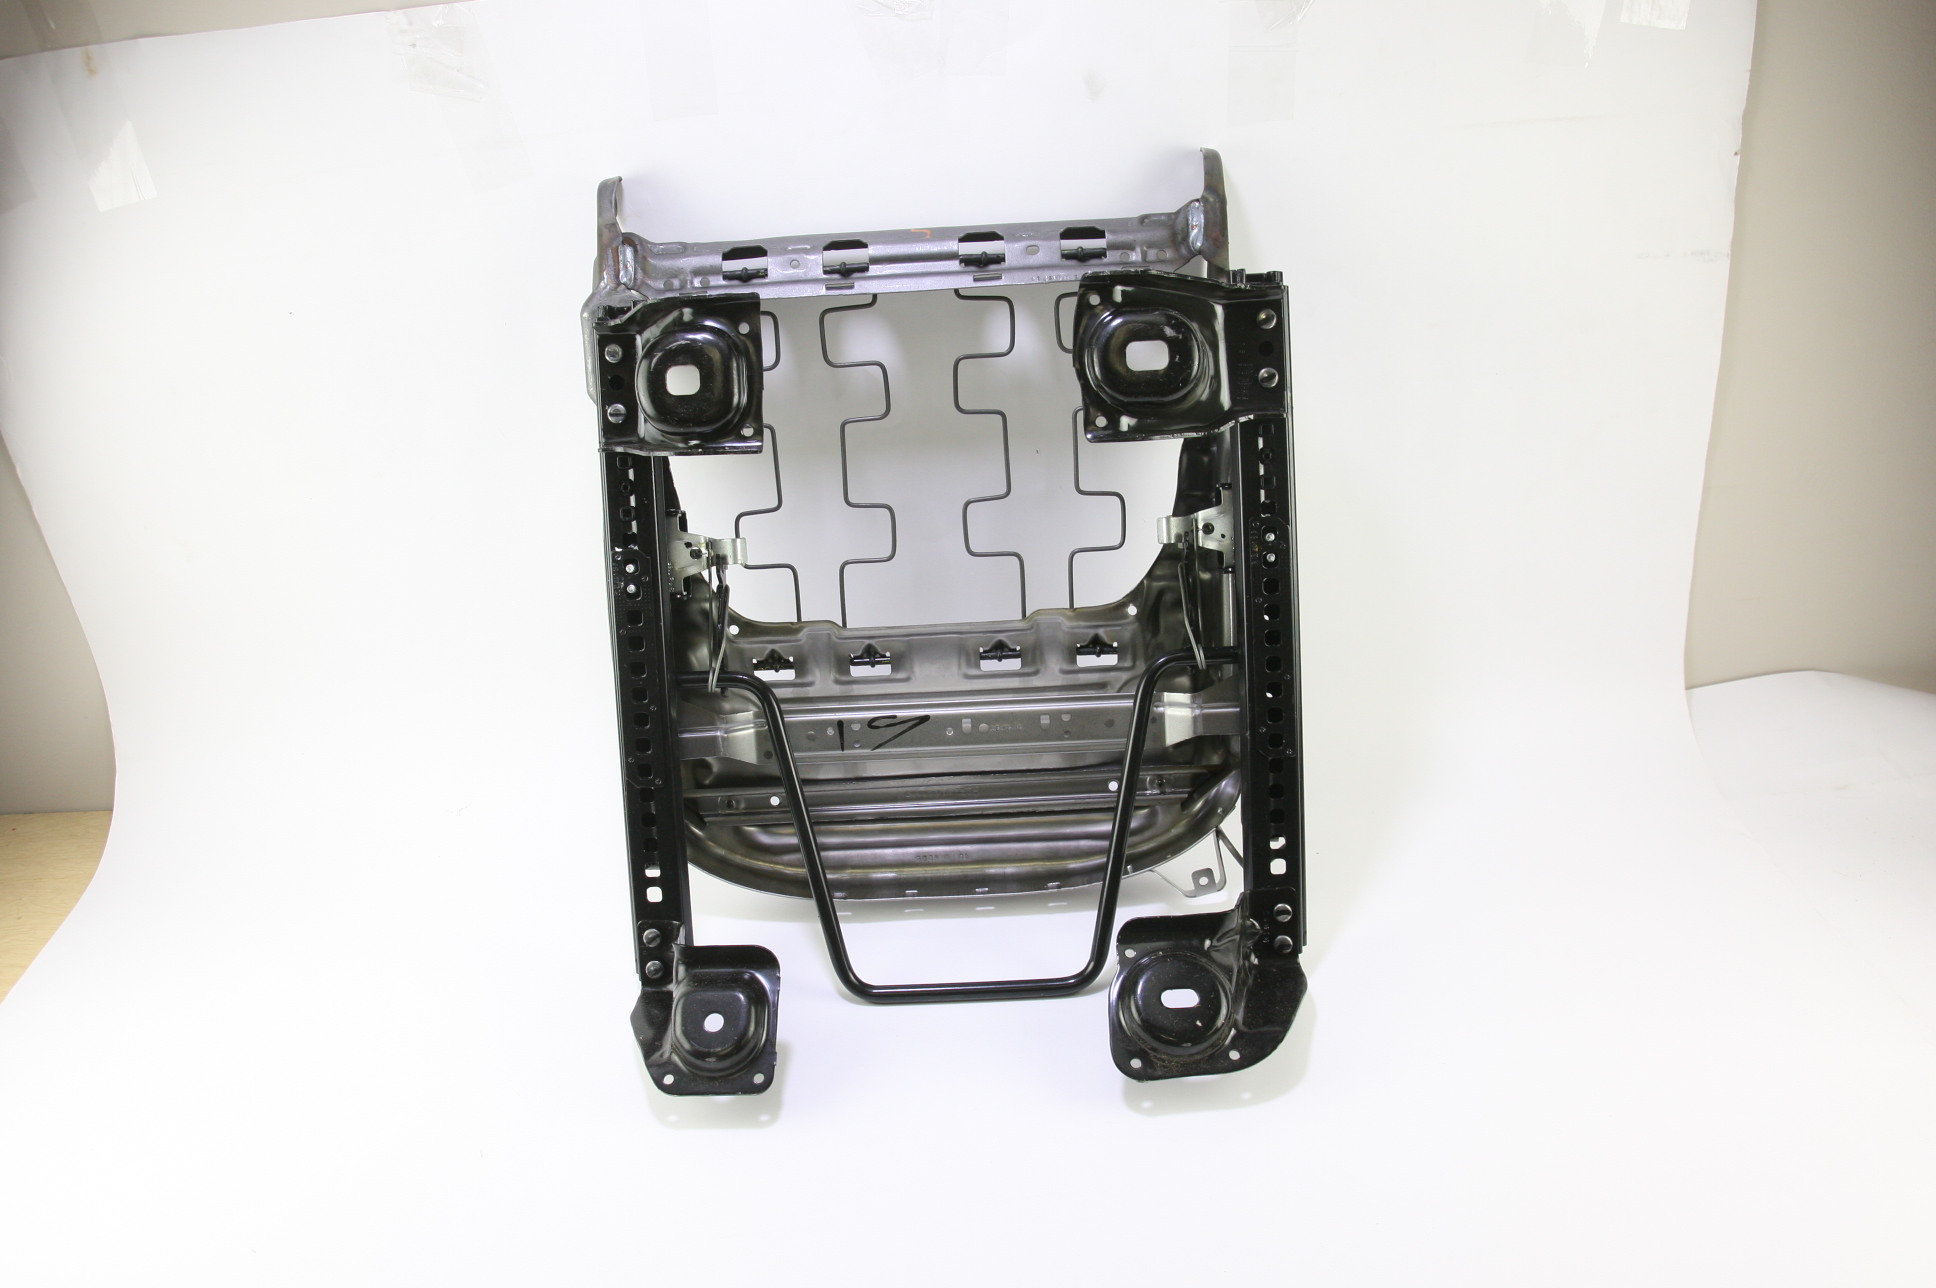 New OEM BC3Z9661704A Ford 11-16 Front Seat Cushion Frame Right Free Shipping NIP - image 1